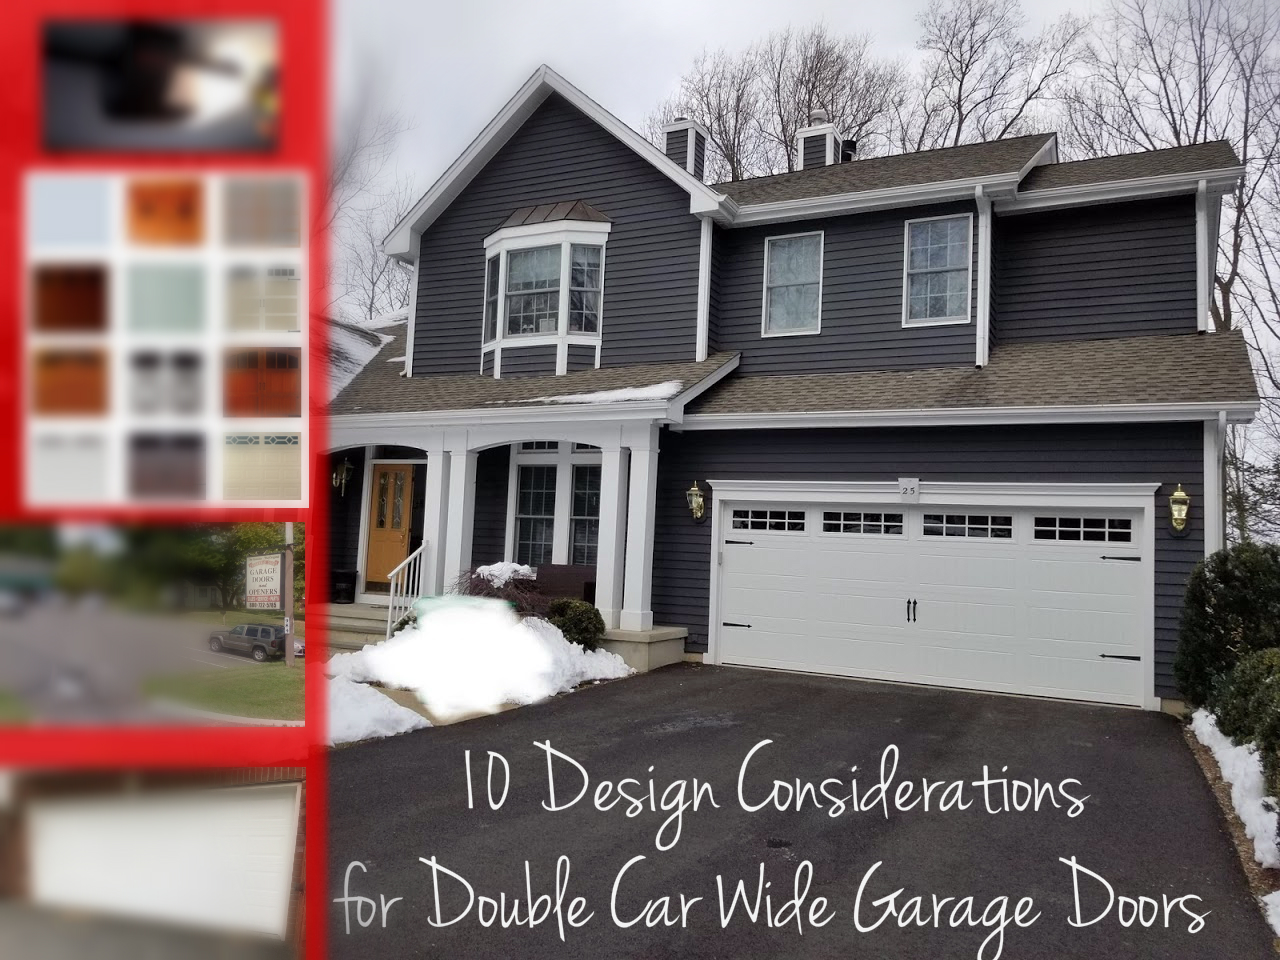 Double Car Wide Garage Door by Overhead Door Company of Central Jersey